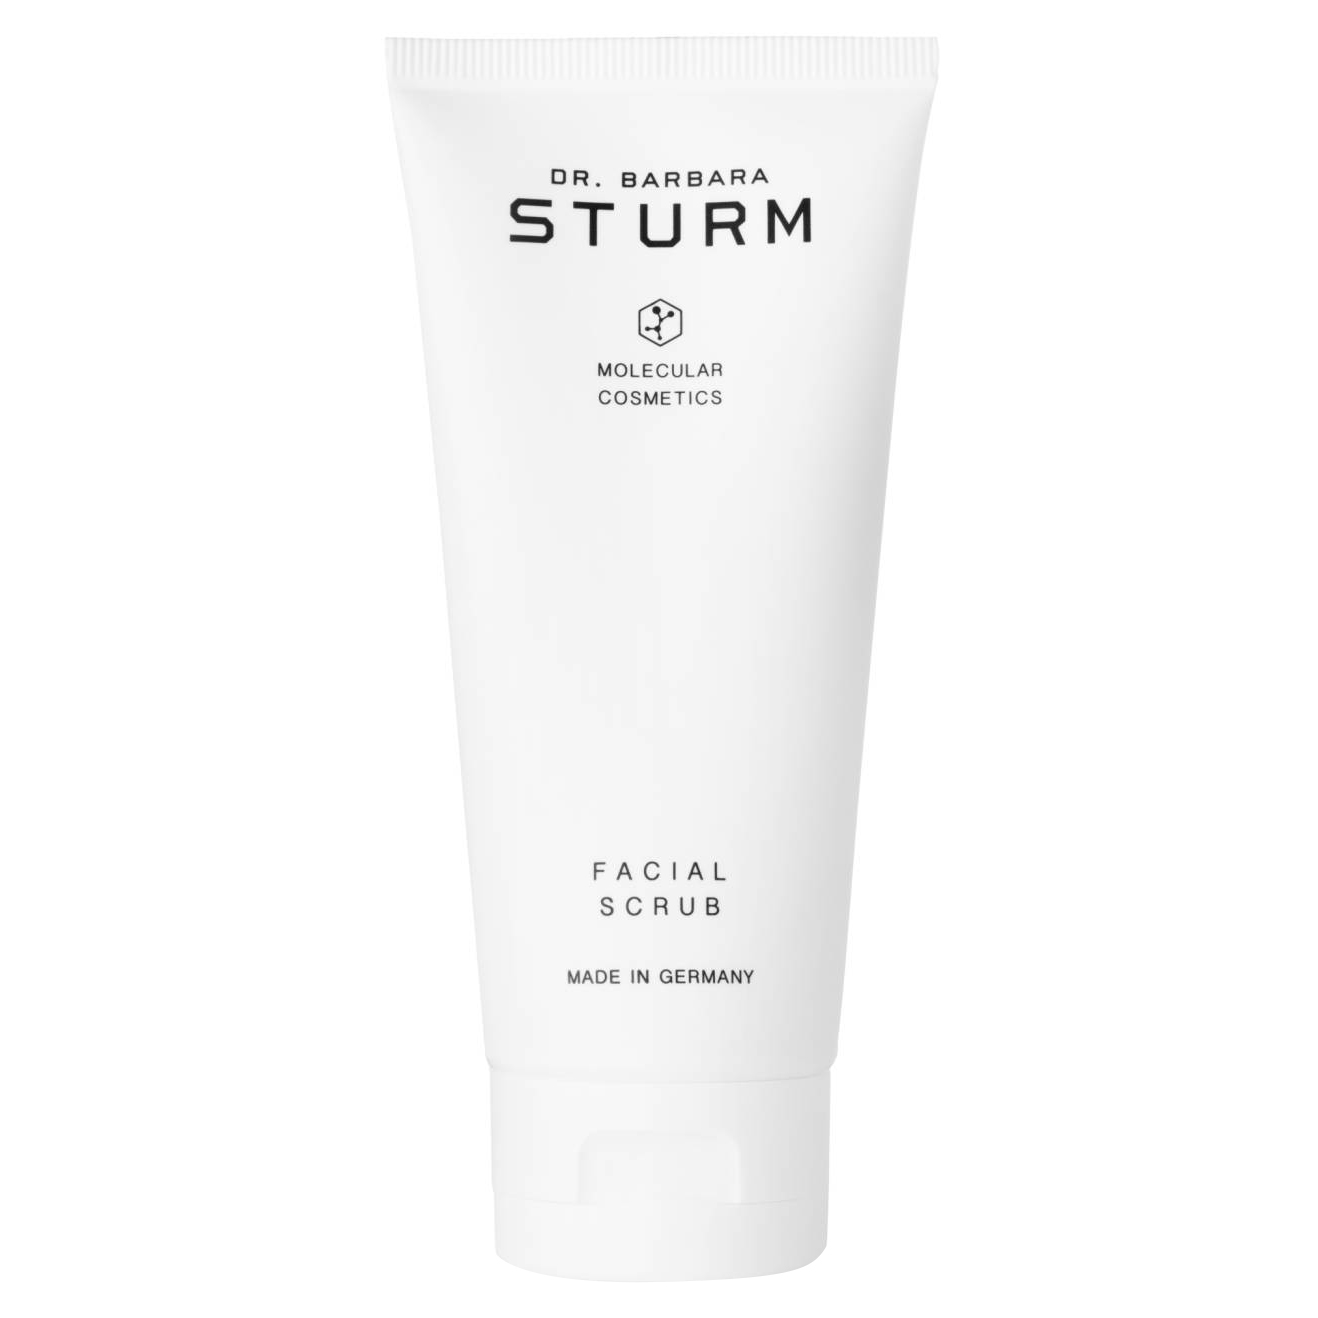 Best Exfoliator for Dry Skin: Dr. Barbara Sturm Facial Scrub